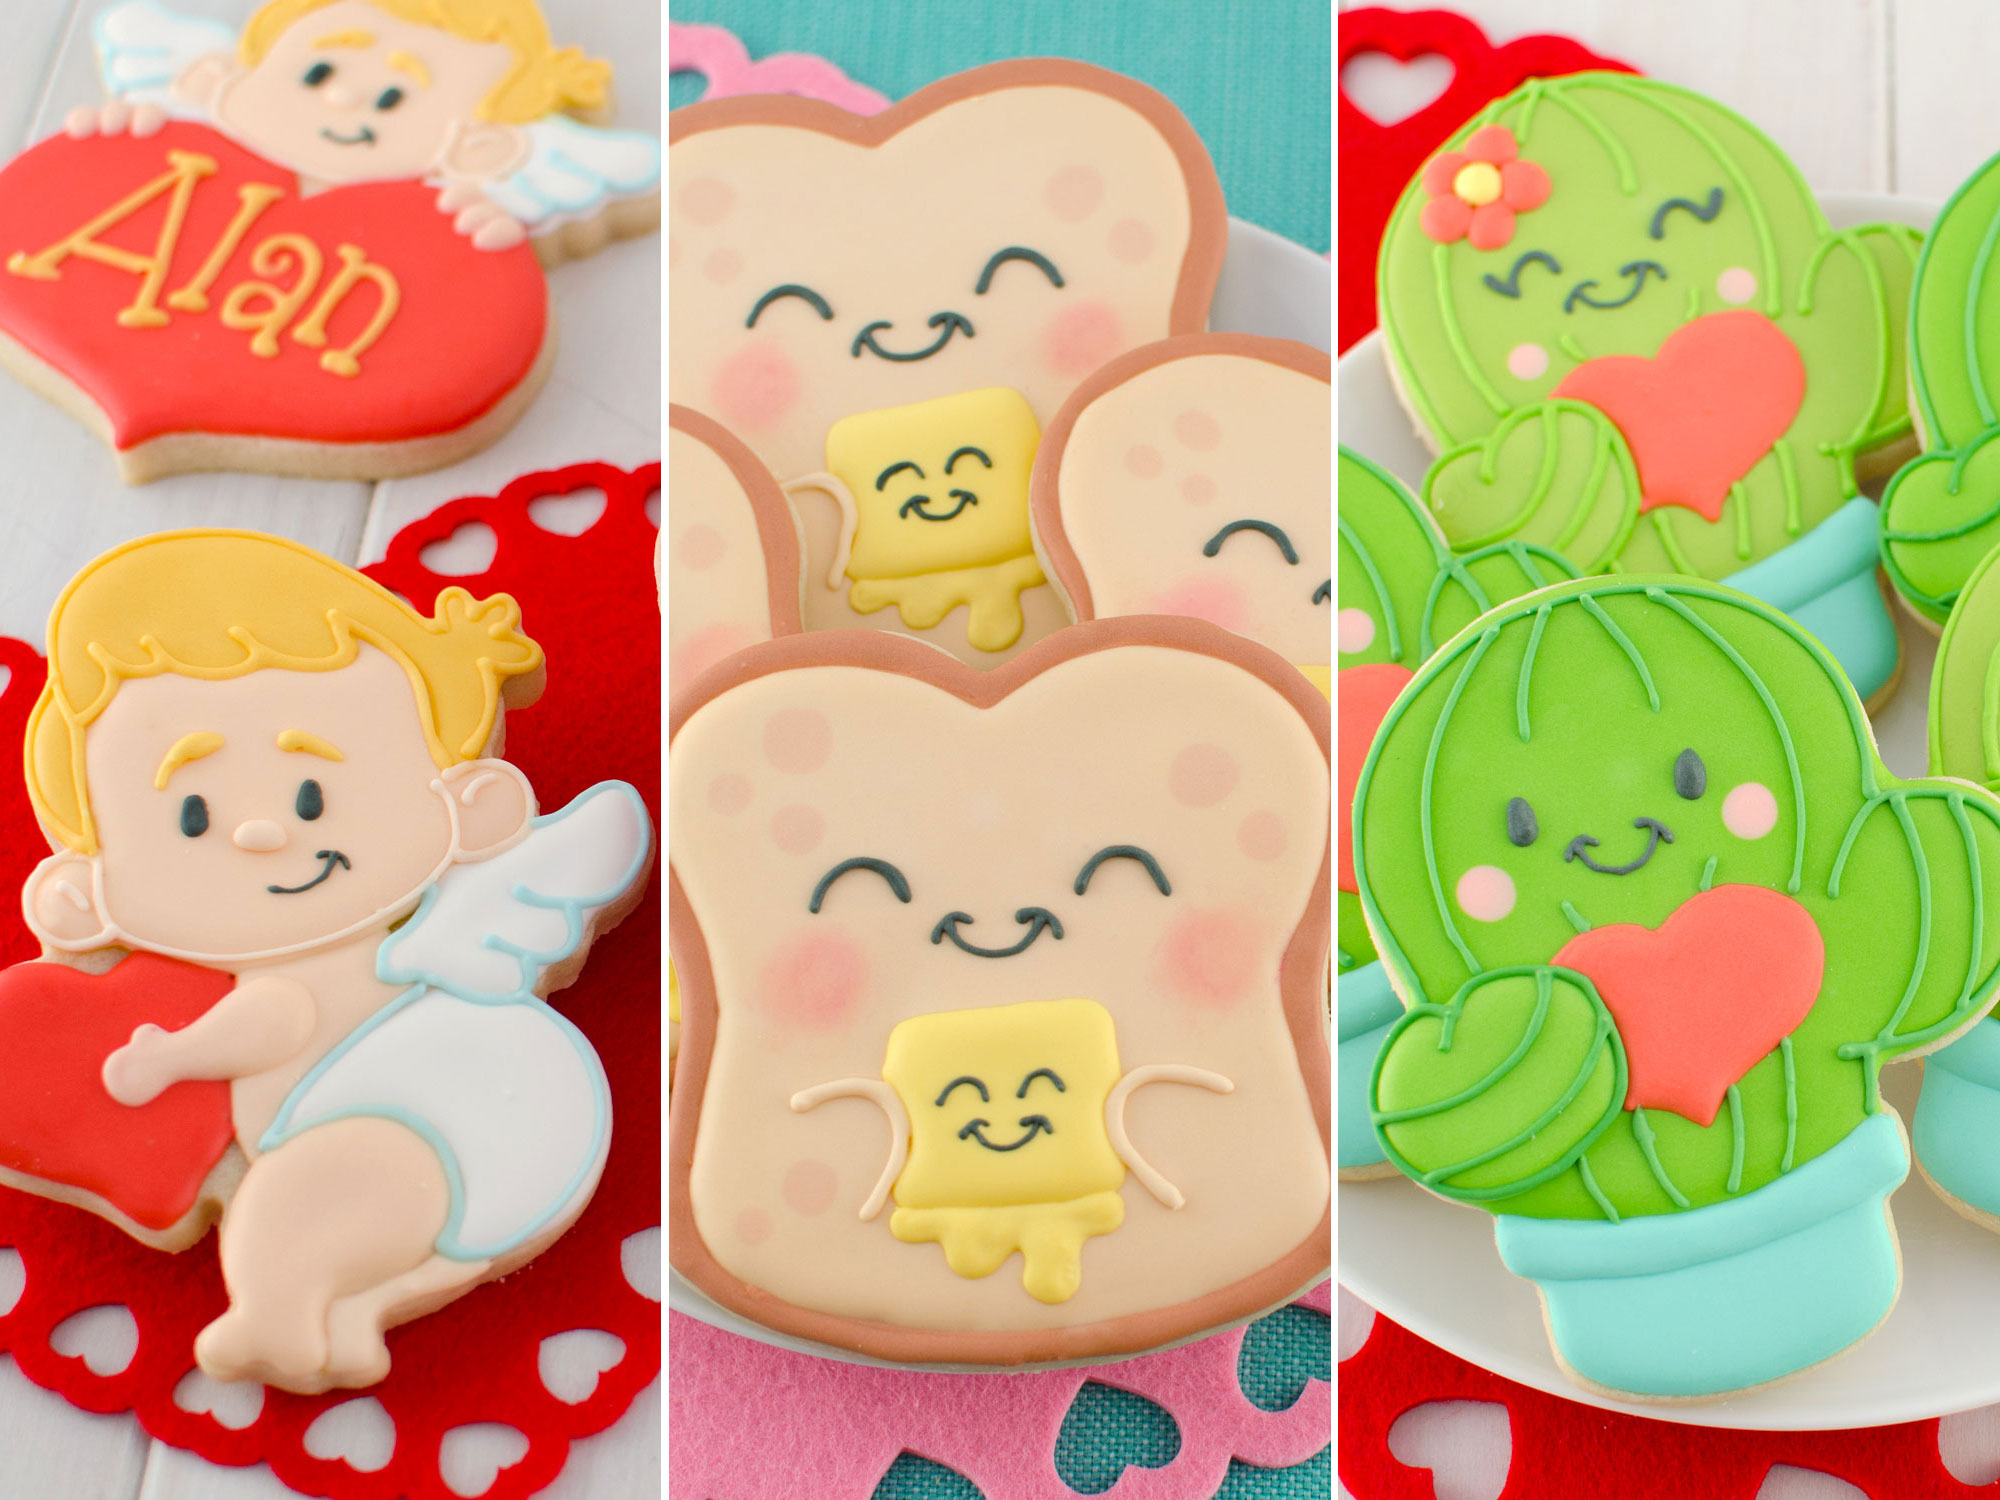 New Valentine's Day Cookie Cutters and Designs